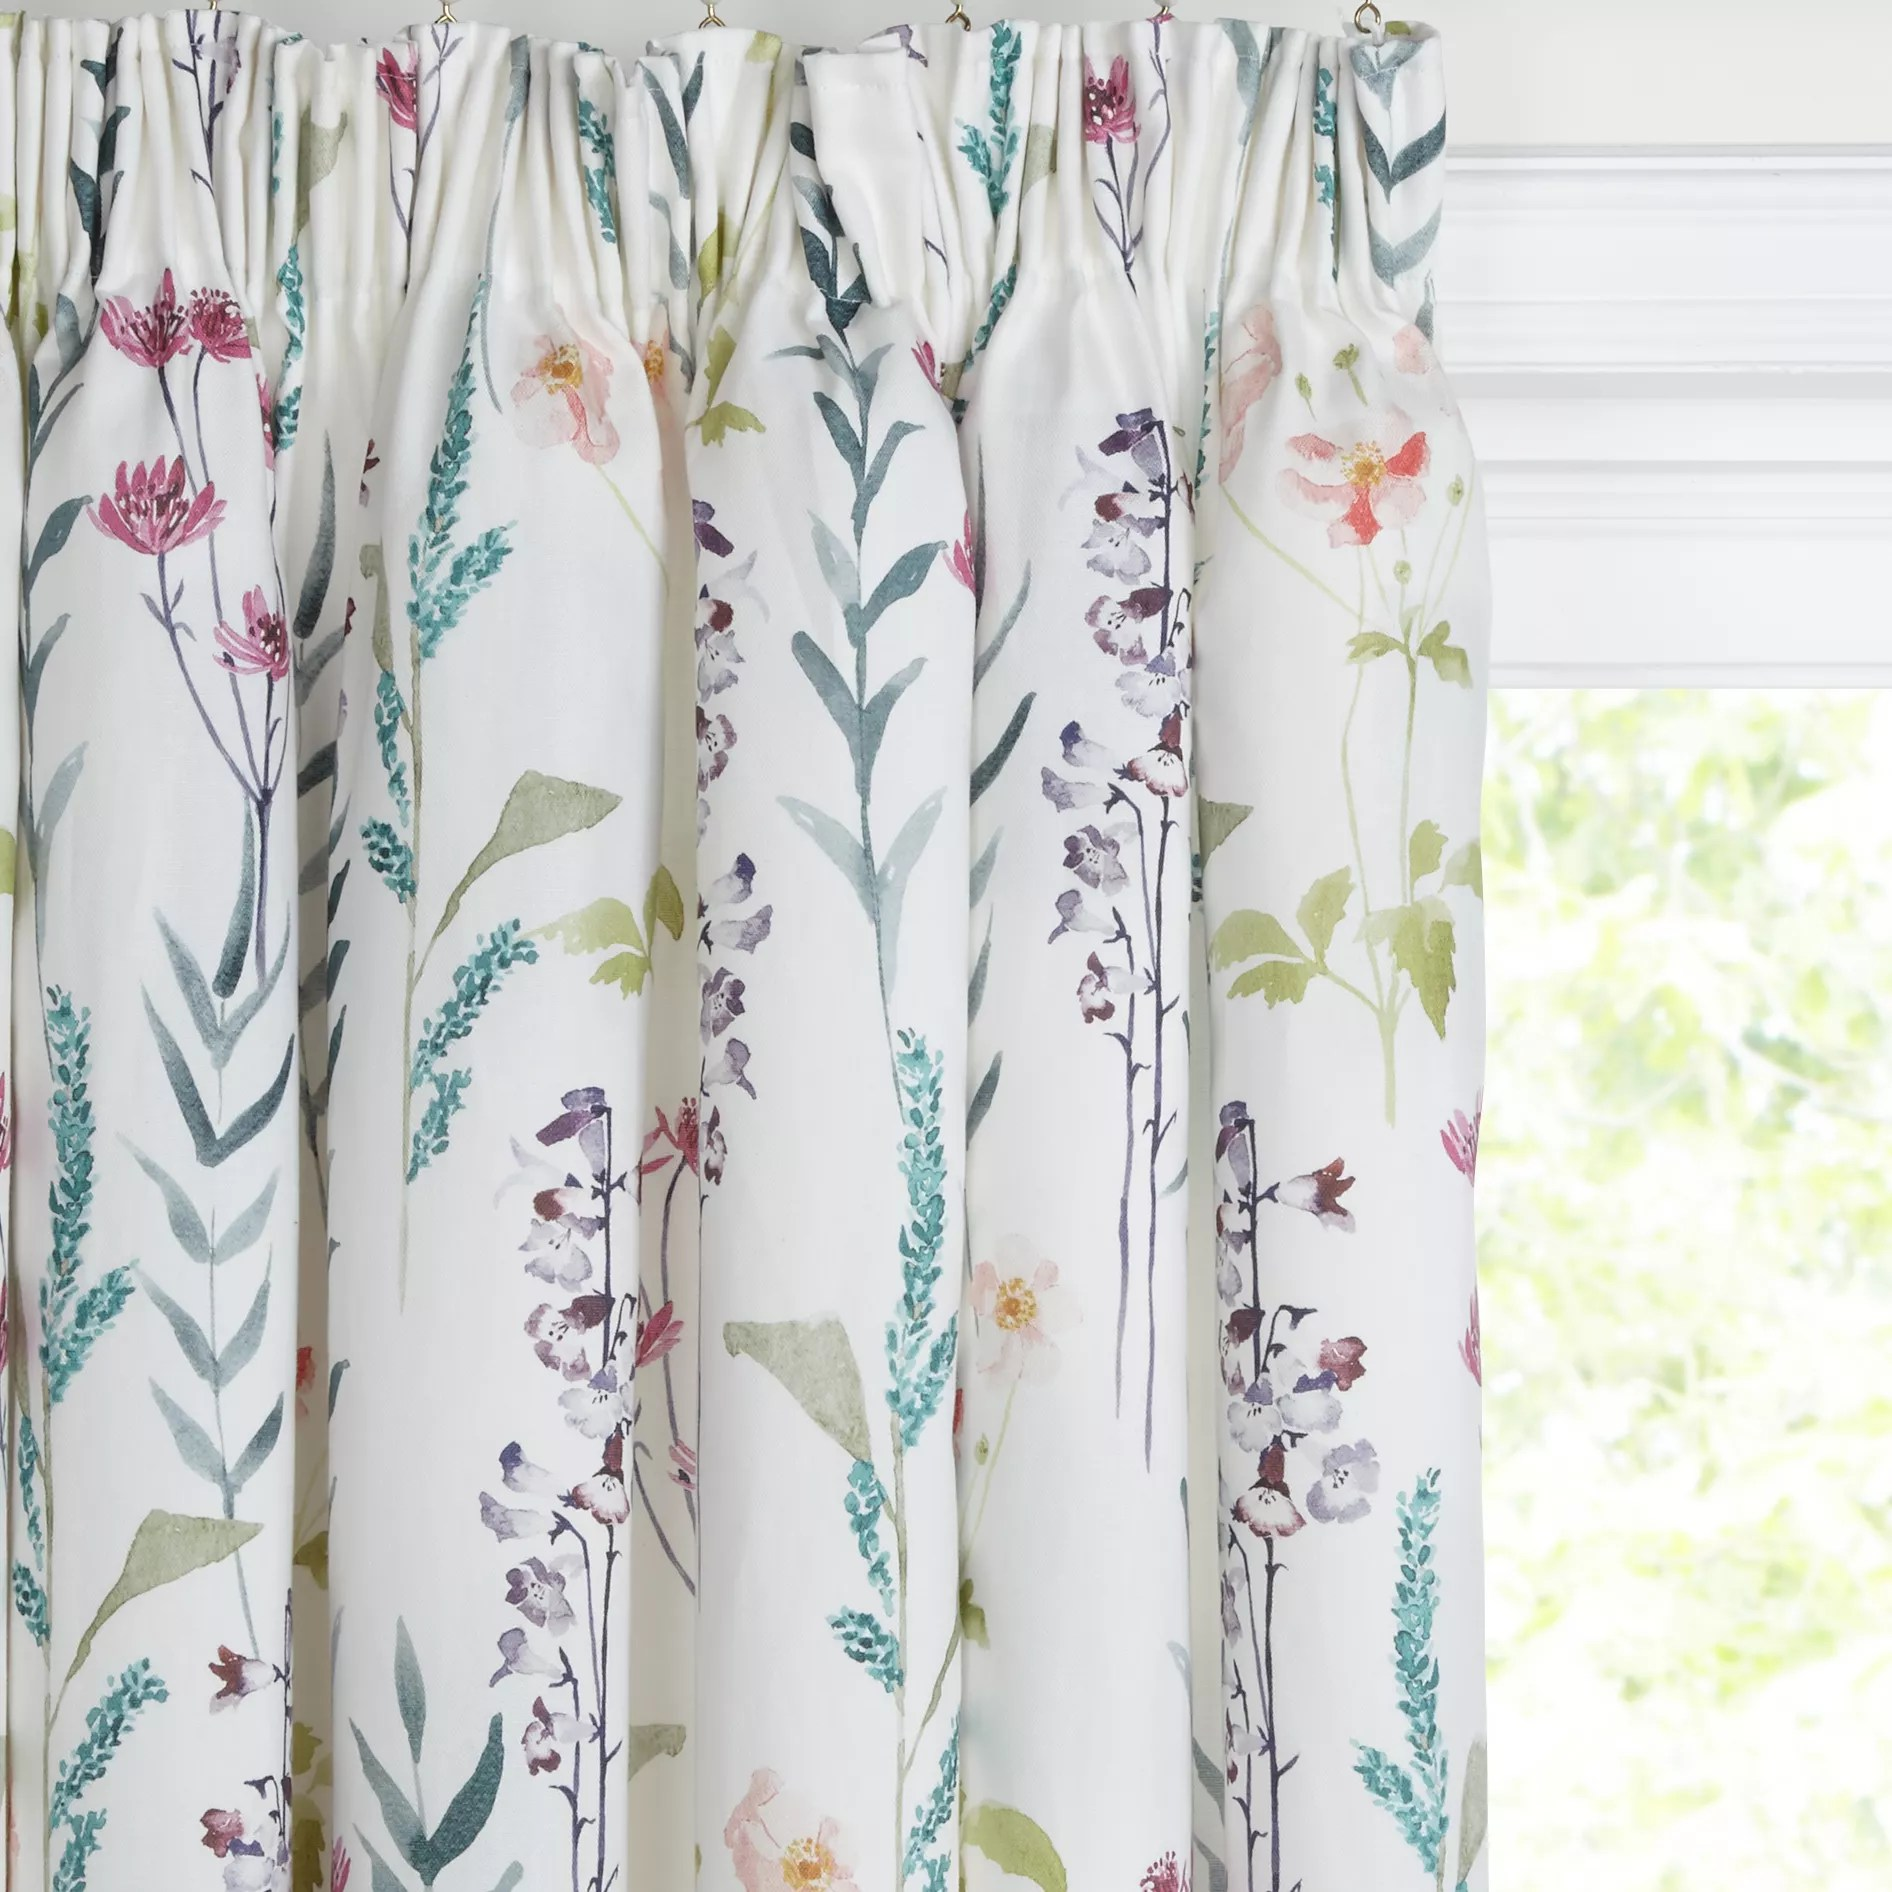 Buy Shower Curtains Online Buy Shower Curtains Online